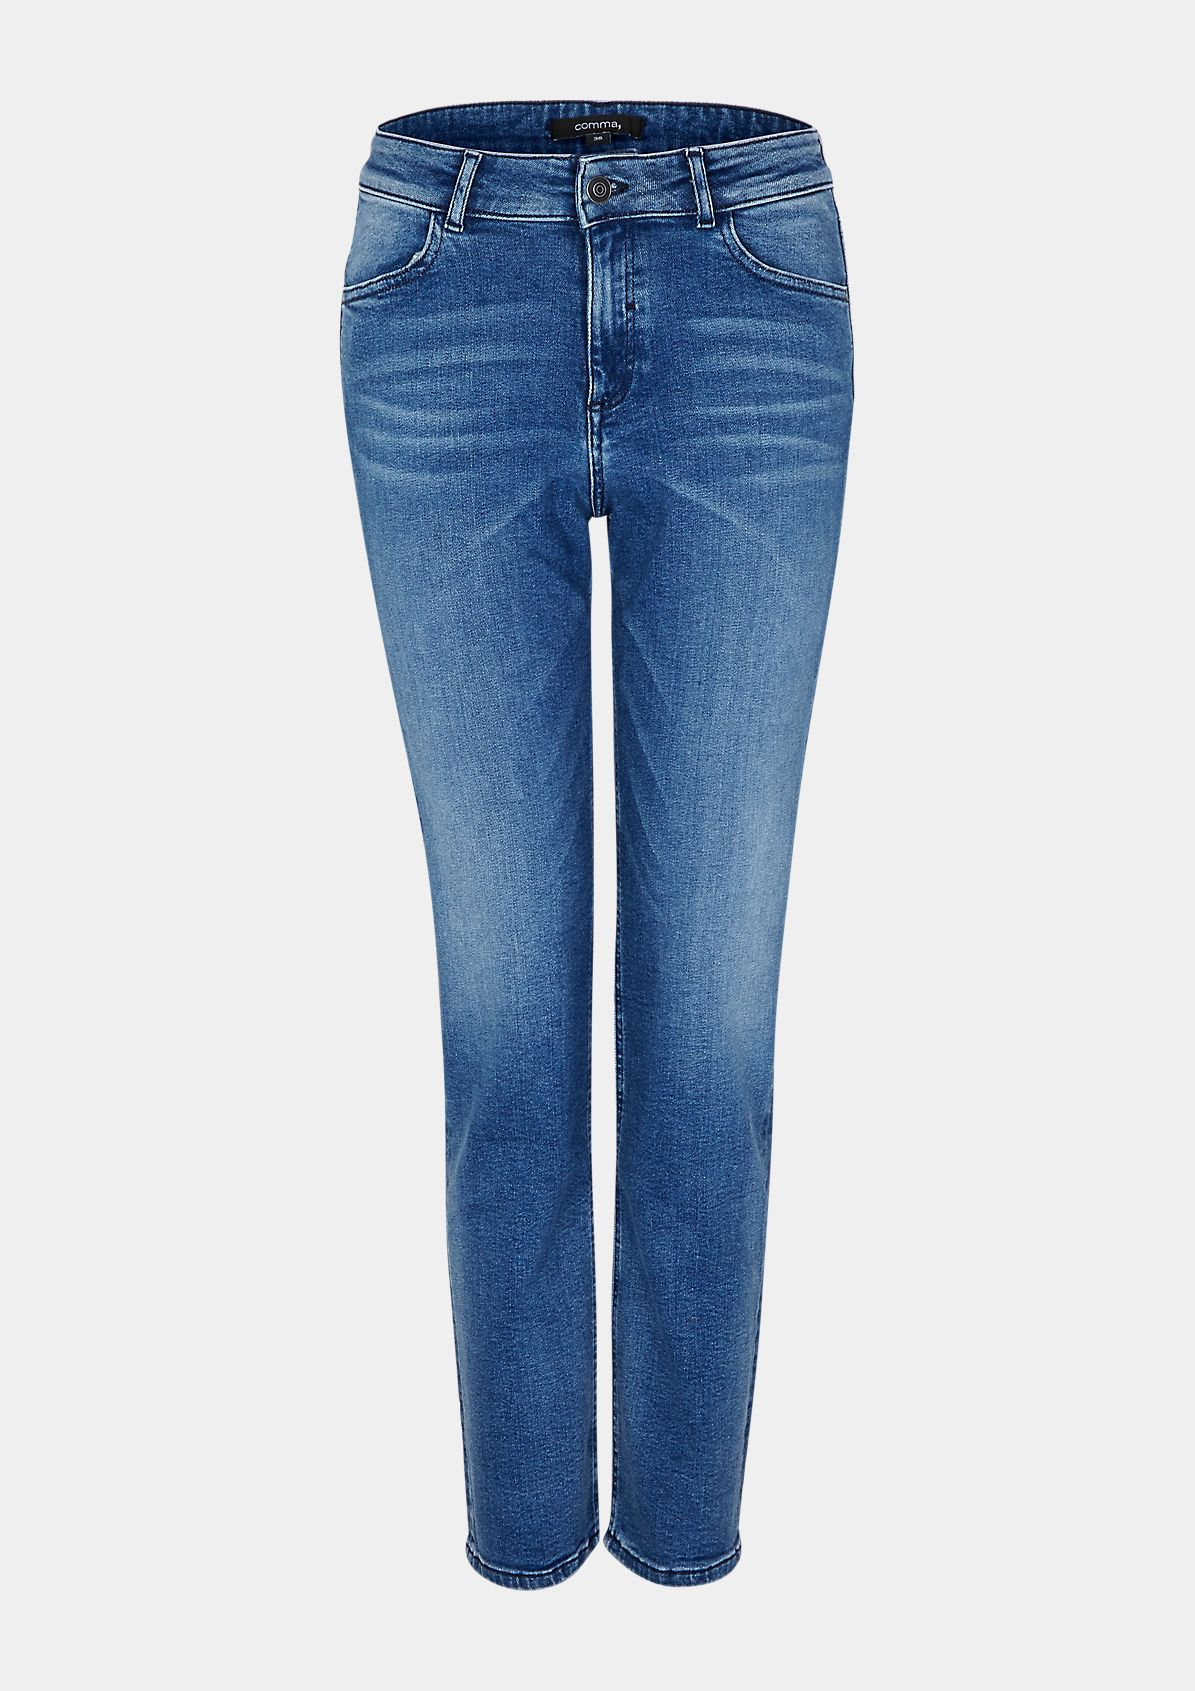 Regular Fit: Straight ankle leg-Jeans